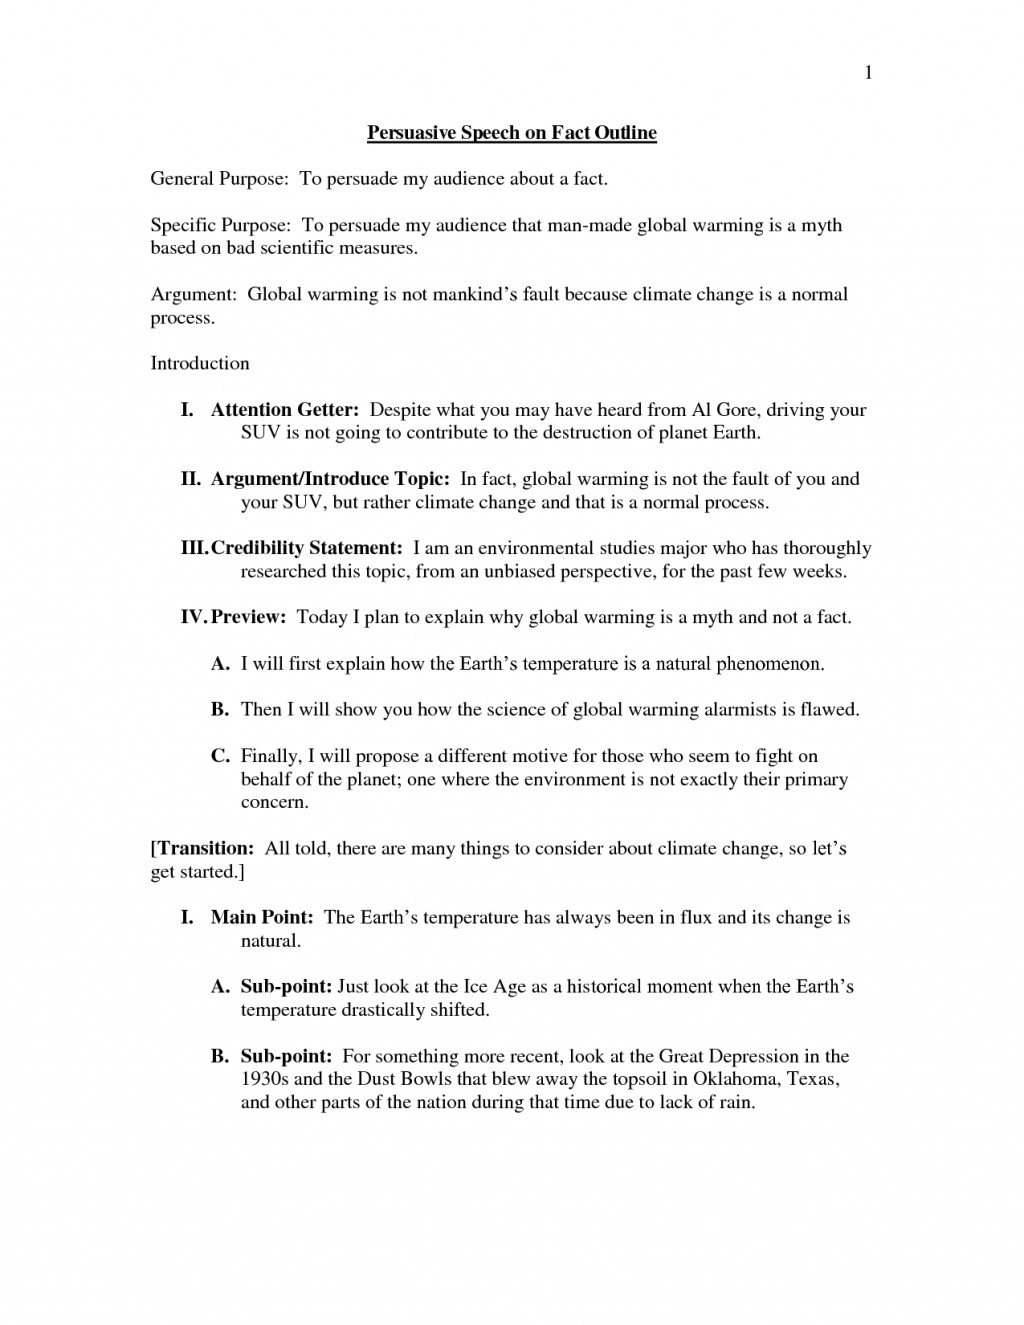 024 Essay Example Global Warming Persuasive Outline Of How To Write An Argumentative On Nova Myth Or F Nb5h37b5f7xx486xfzxx2yldnrsw266t4mxgg66nf86x1lldn8xh3zl44qxxk7dmn8qw37zpg3ydc4bpg2ys9z Top Apa Format Template Word 2010 Large